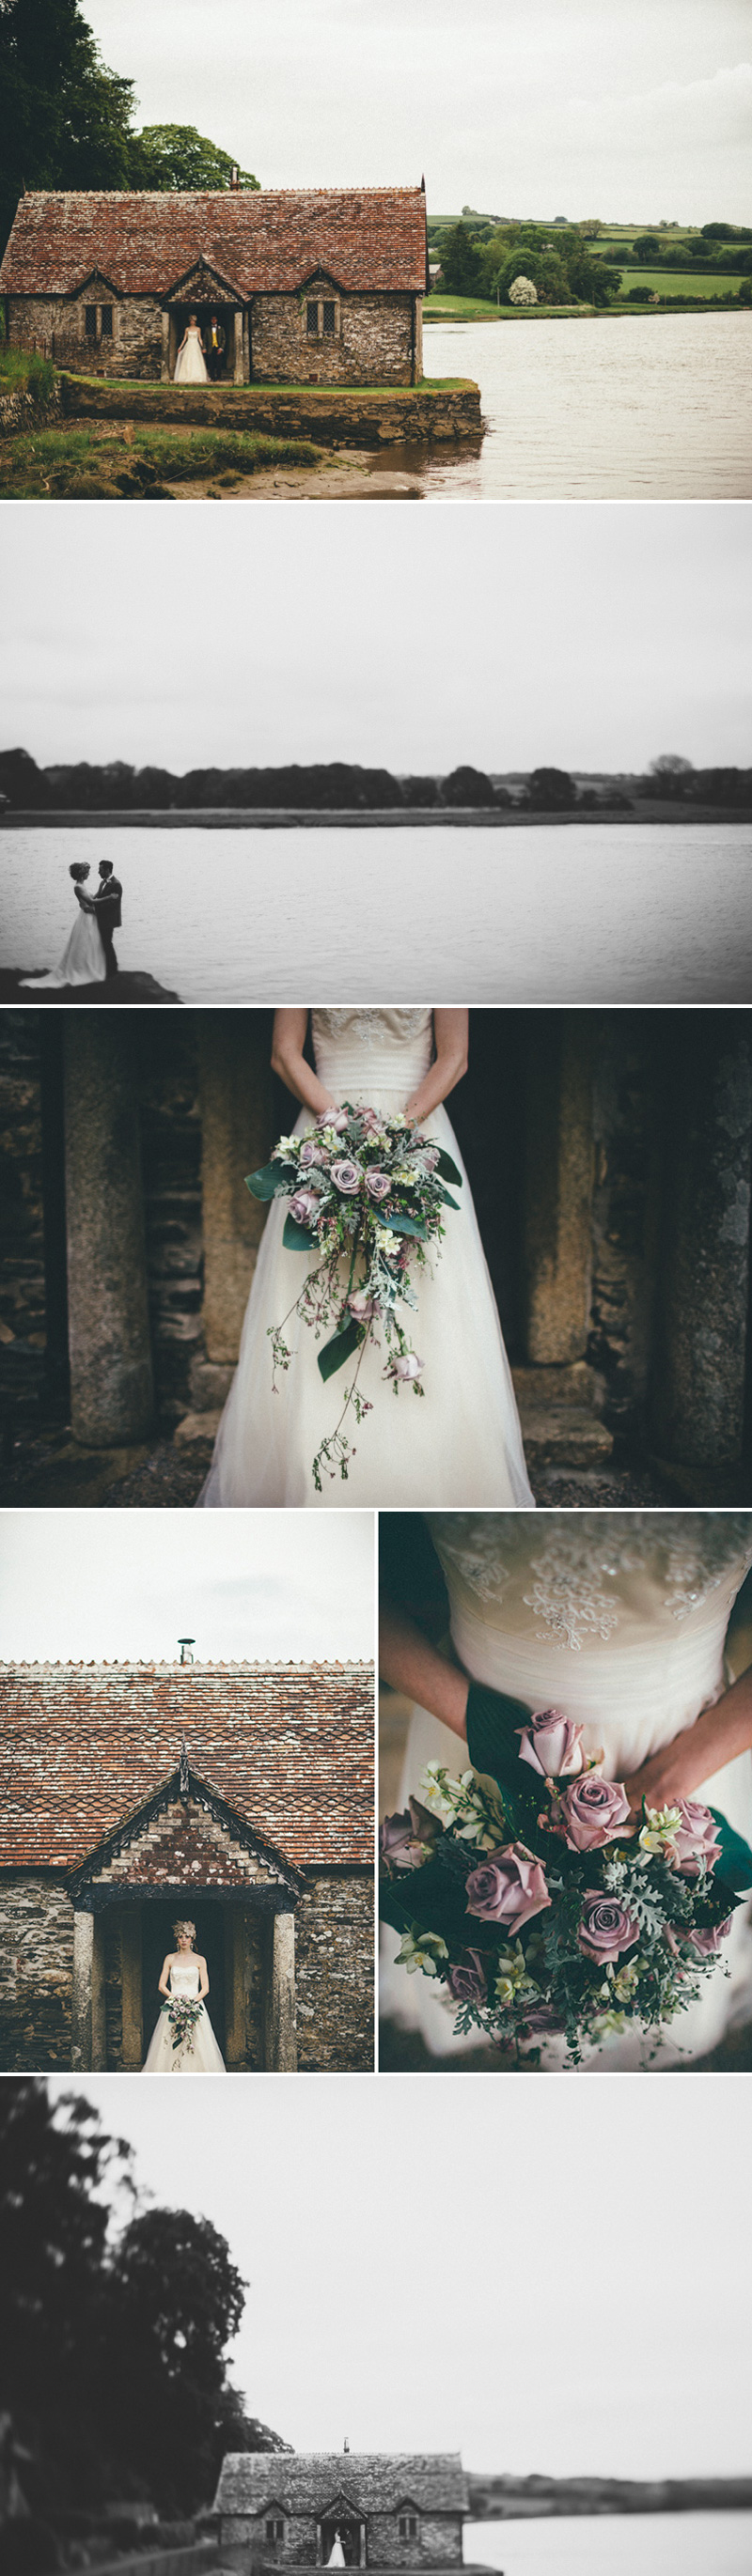 rustic-elegance-bridal-styled-shoot-at-pentillie-castle-styled-by-blue-fizz-ben-selway-photography-coco-wedding-venues-layer3b